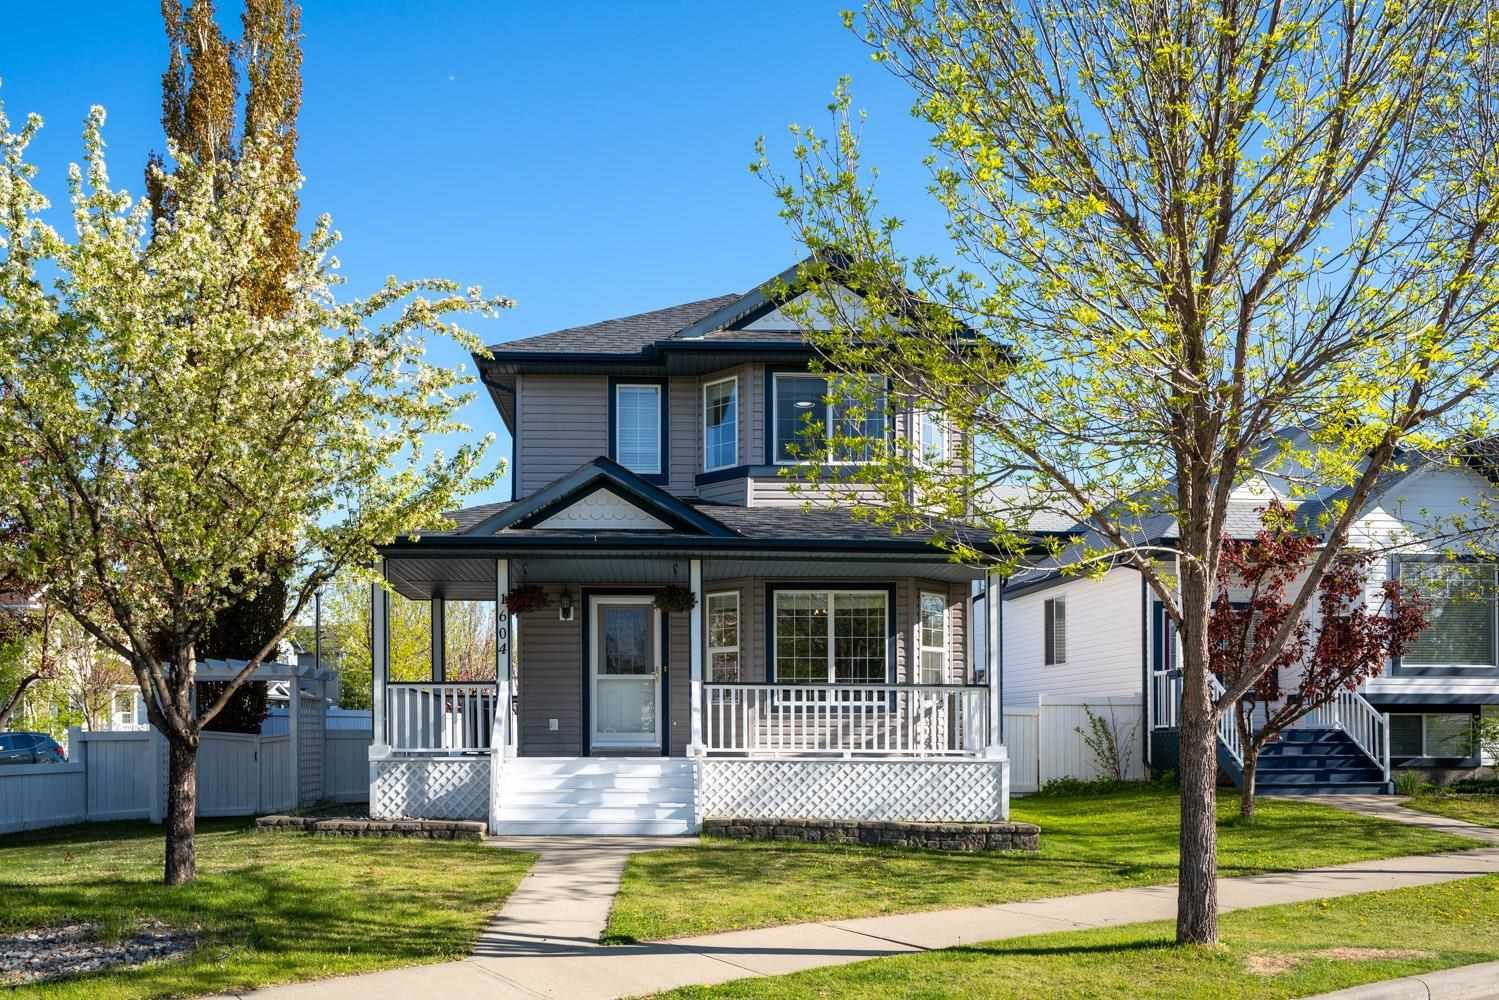 Main Photo: 1604 TOMPKINS Place in Edmonton: Zone 14 House for sale : MLS®# E4246380